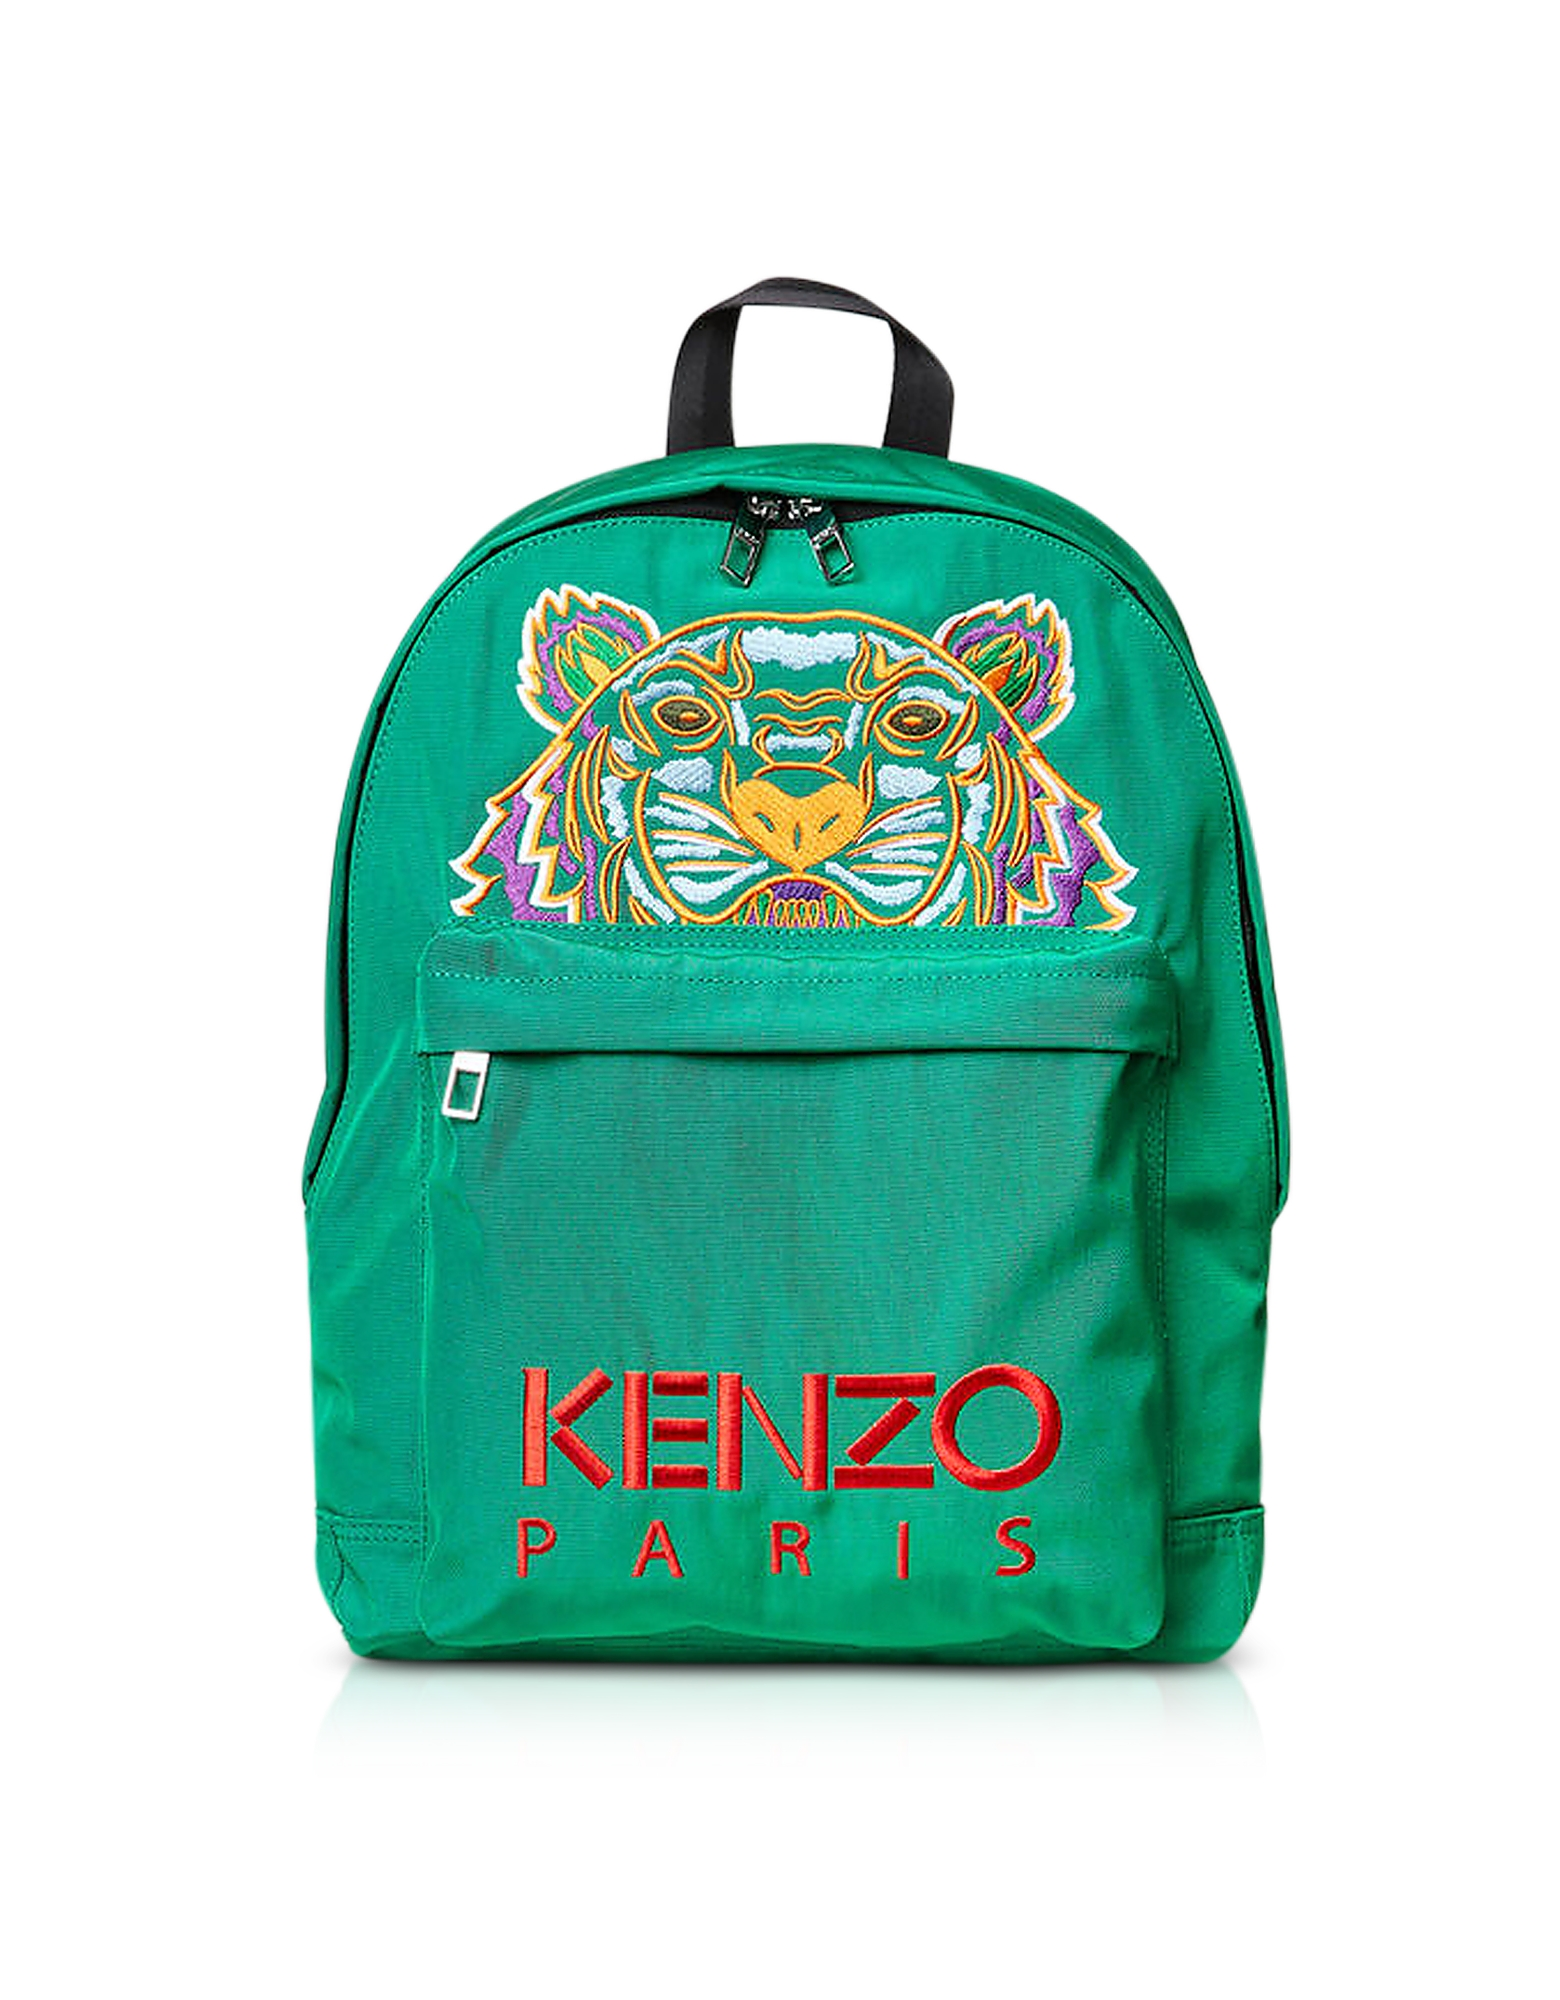 Kenzo Handbags, Grass Green Canvas Large Tiger Backpack